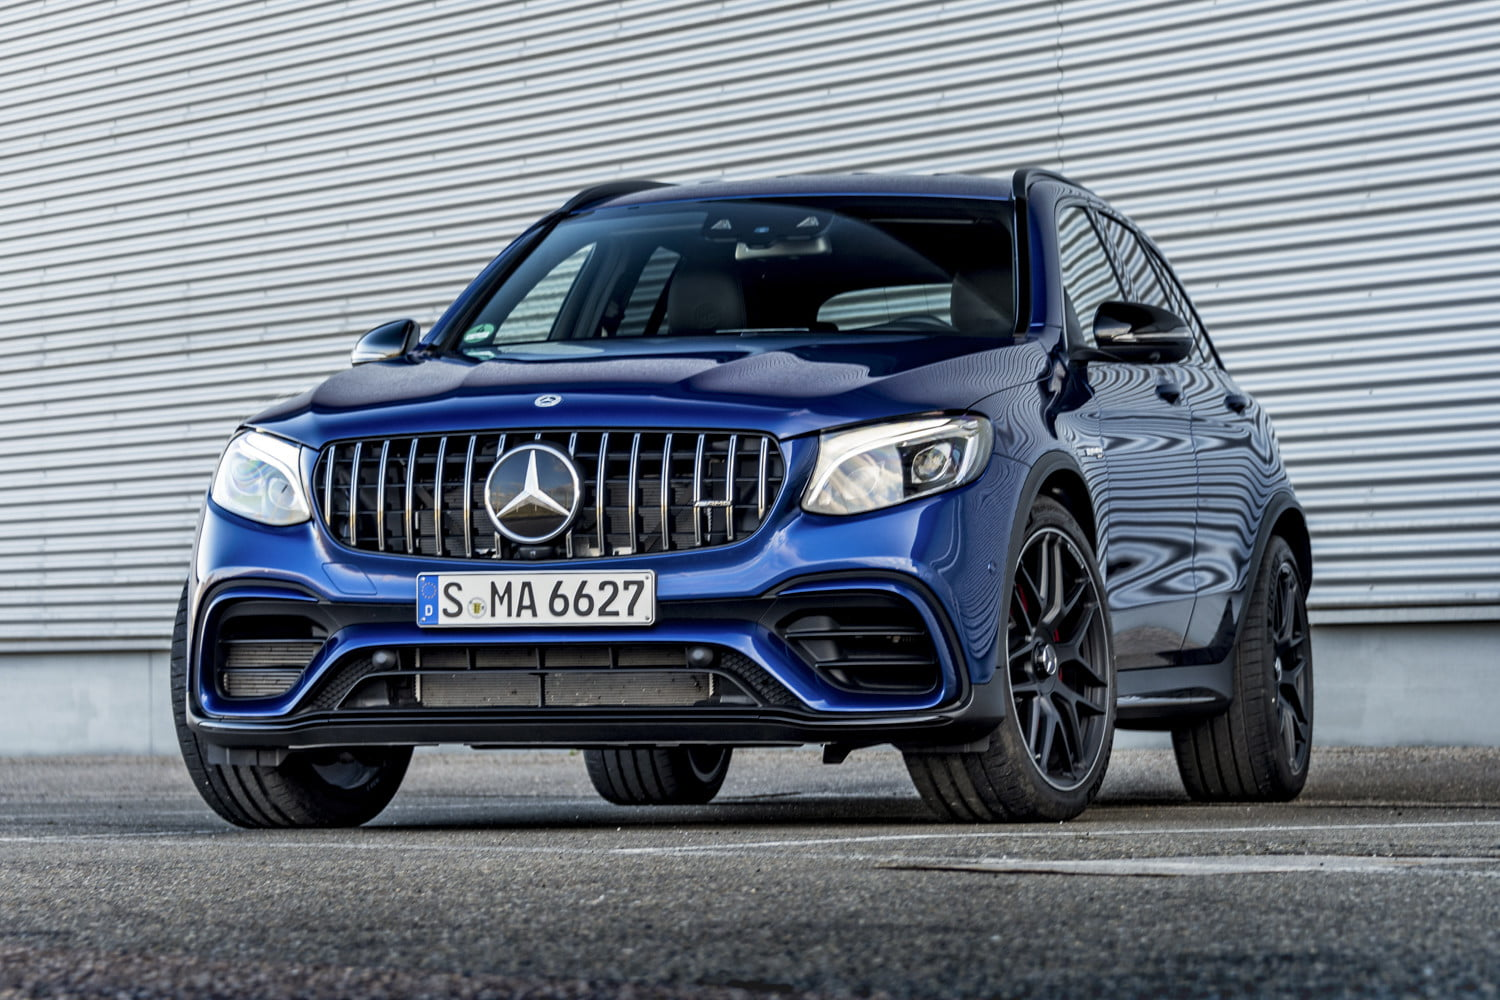 2018 mercedes amg glc63 s first drive review digital trends. Black Bedroom Furniture Sets. Home Design Ideas